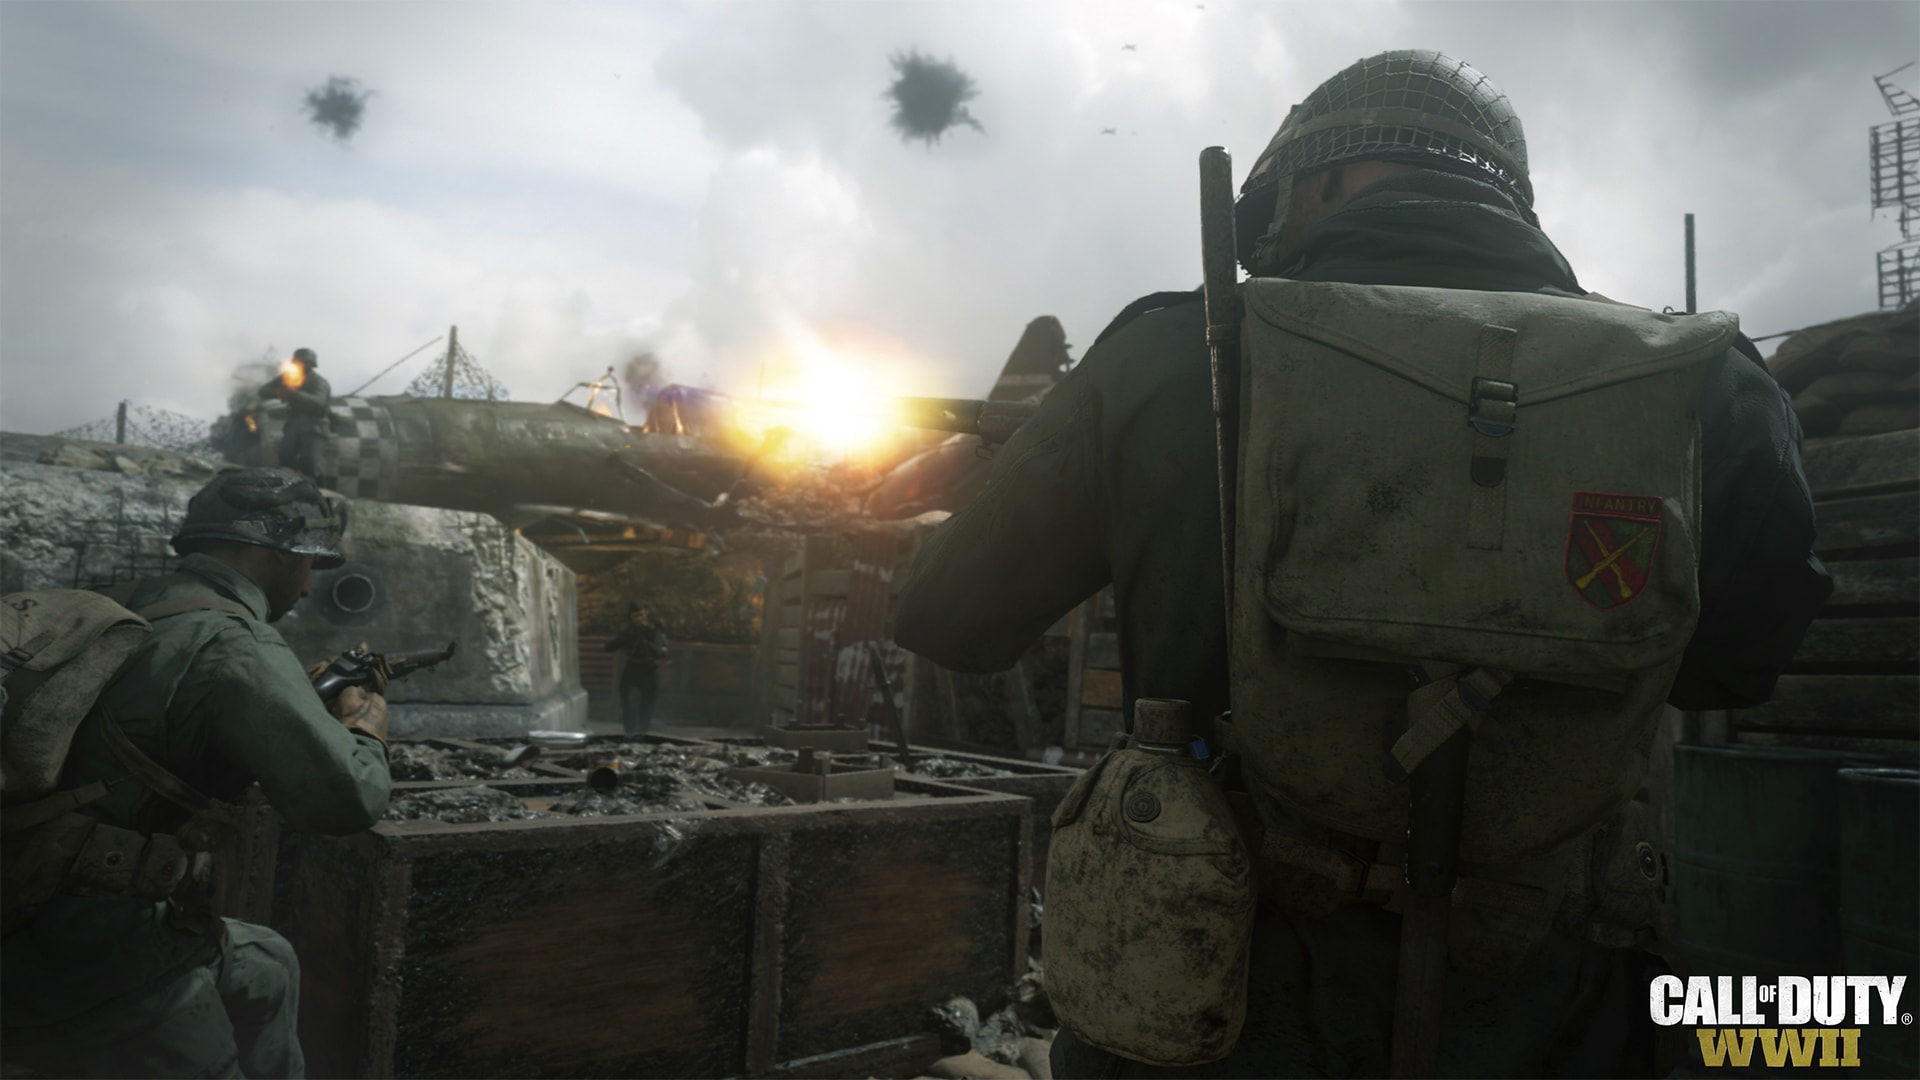 Call-of-Duty-WW2-Free-For-All-guide